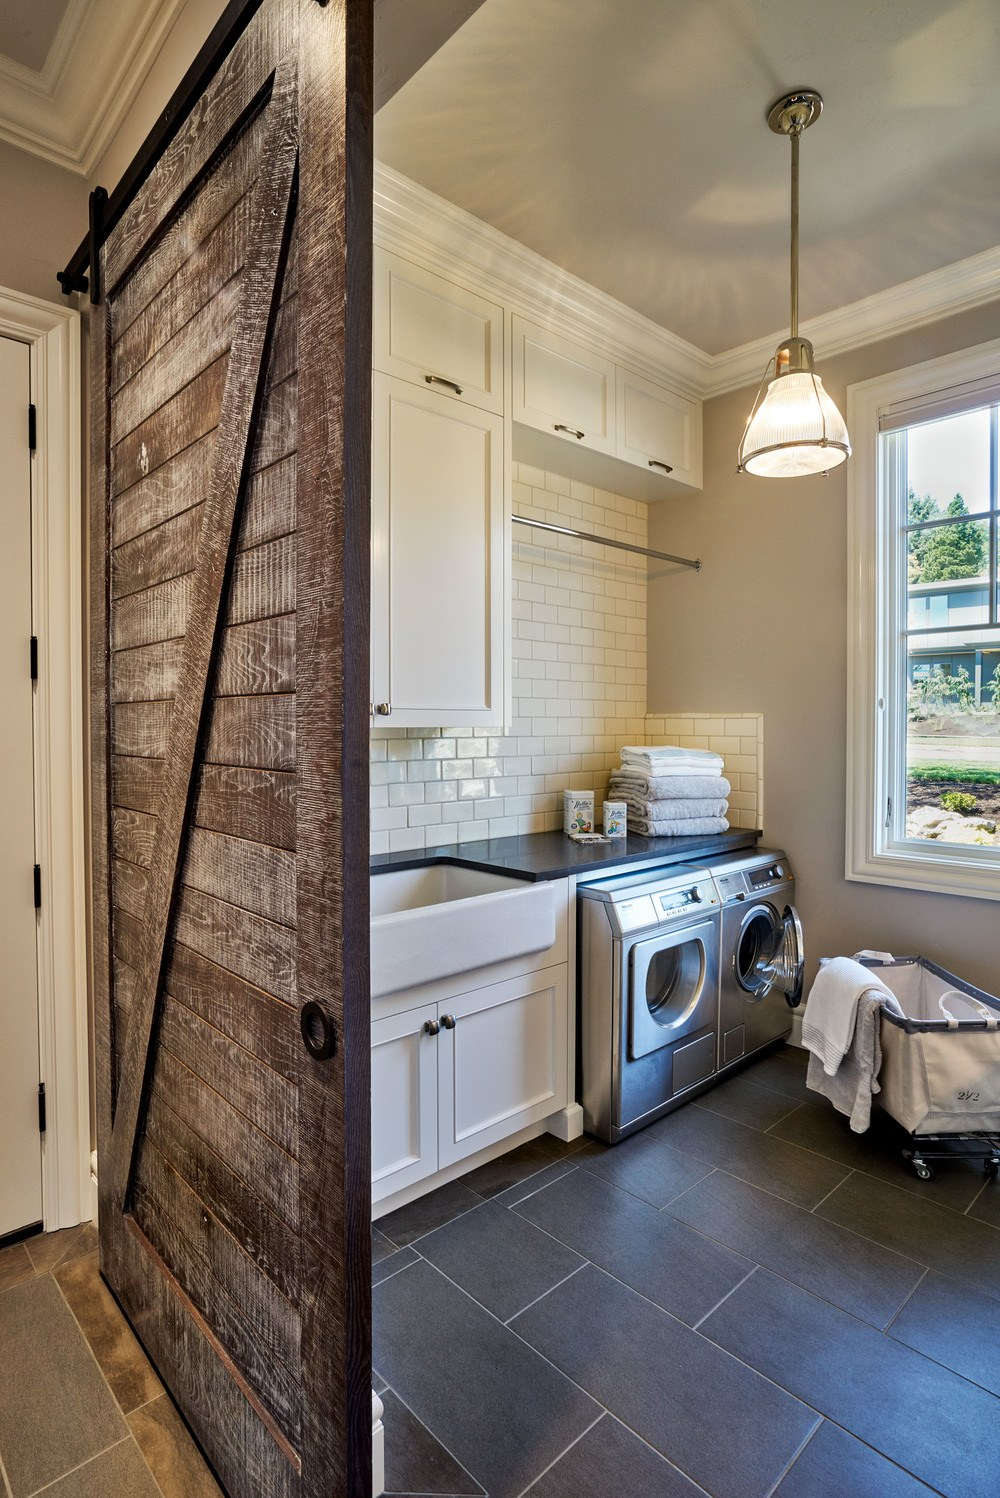 50 beautiful and functional laundry room ideas homelovr on paint for laundry room floor ideas images id=98974